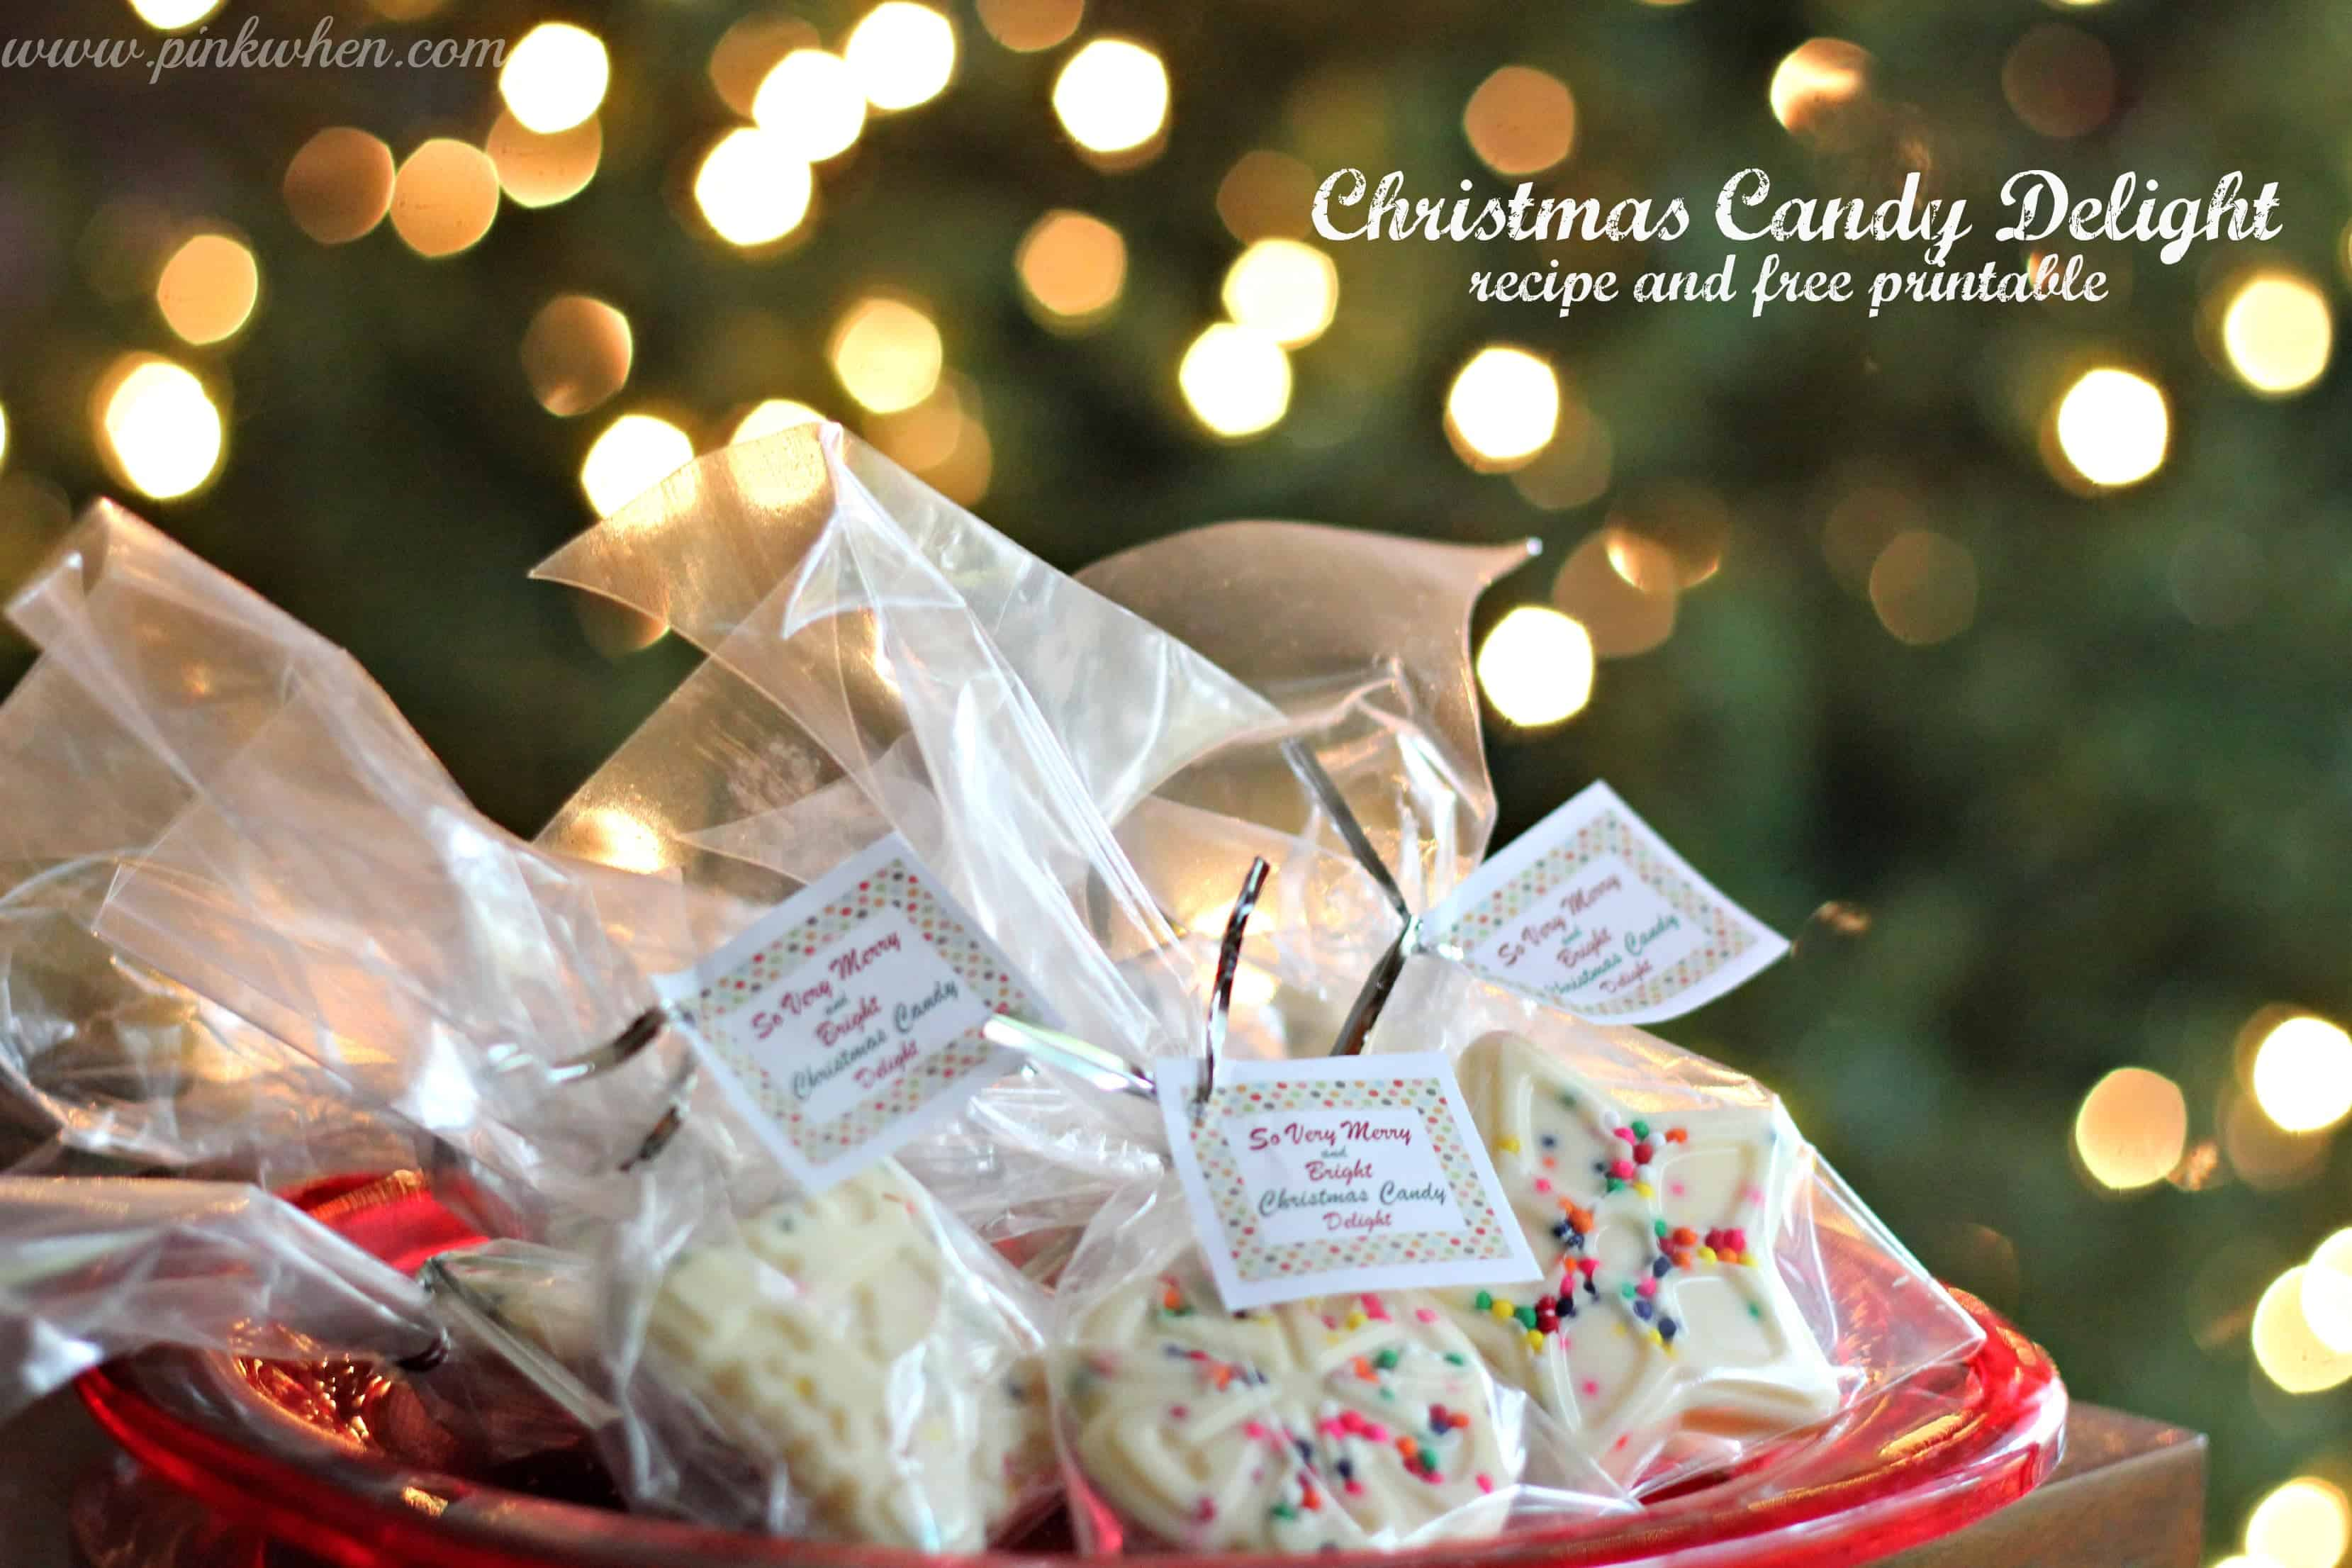 Christmas Candy Delight and Free Printable 1